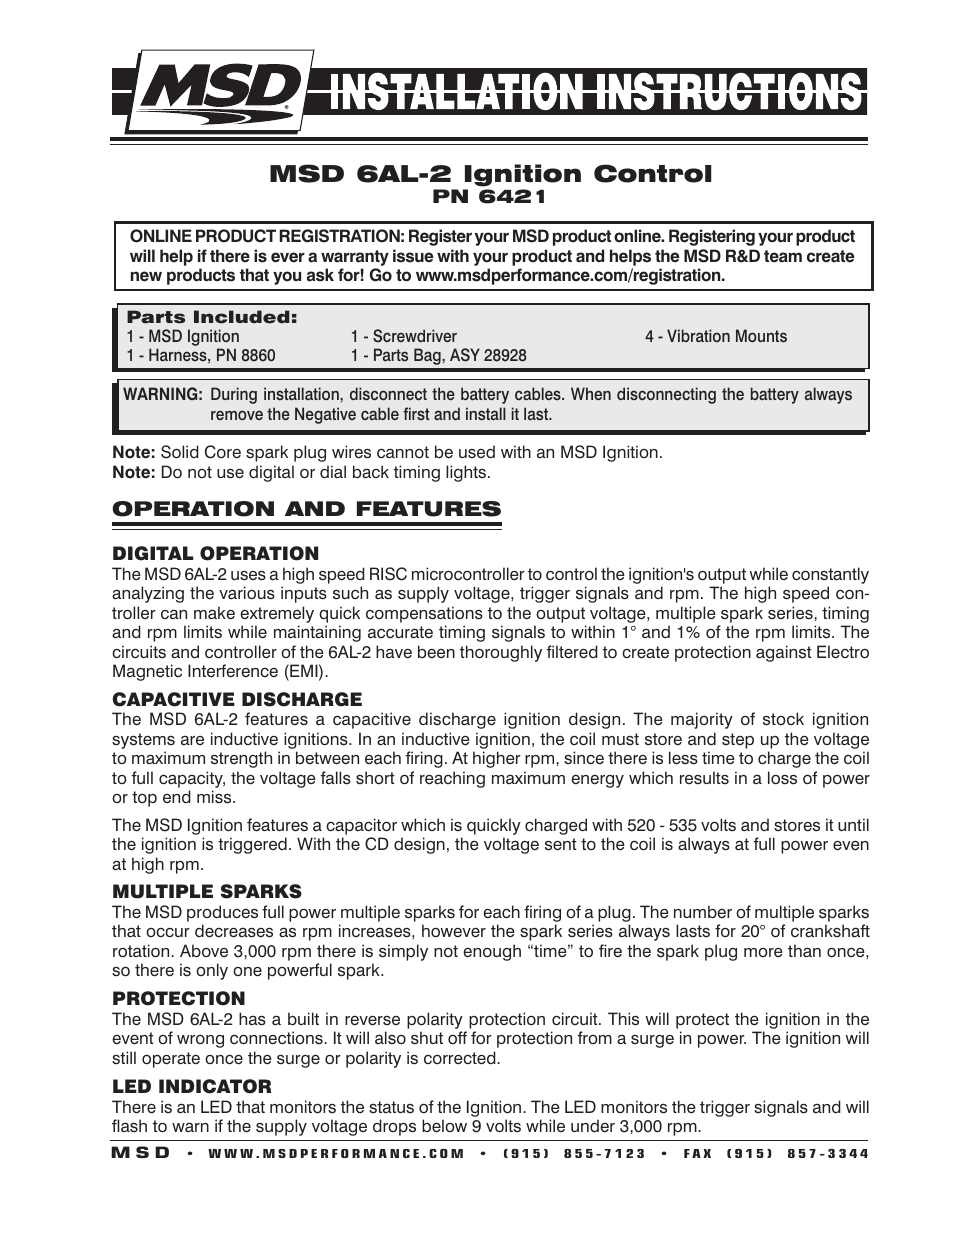 msd 6421 6al 2 ignition control installation page1 msd 6421 6al 2 ignition control installation user manual 28 pages msd 6al2 wiring diagram at reclaimingppi.co